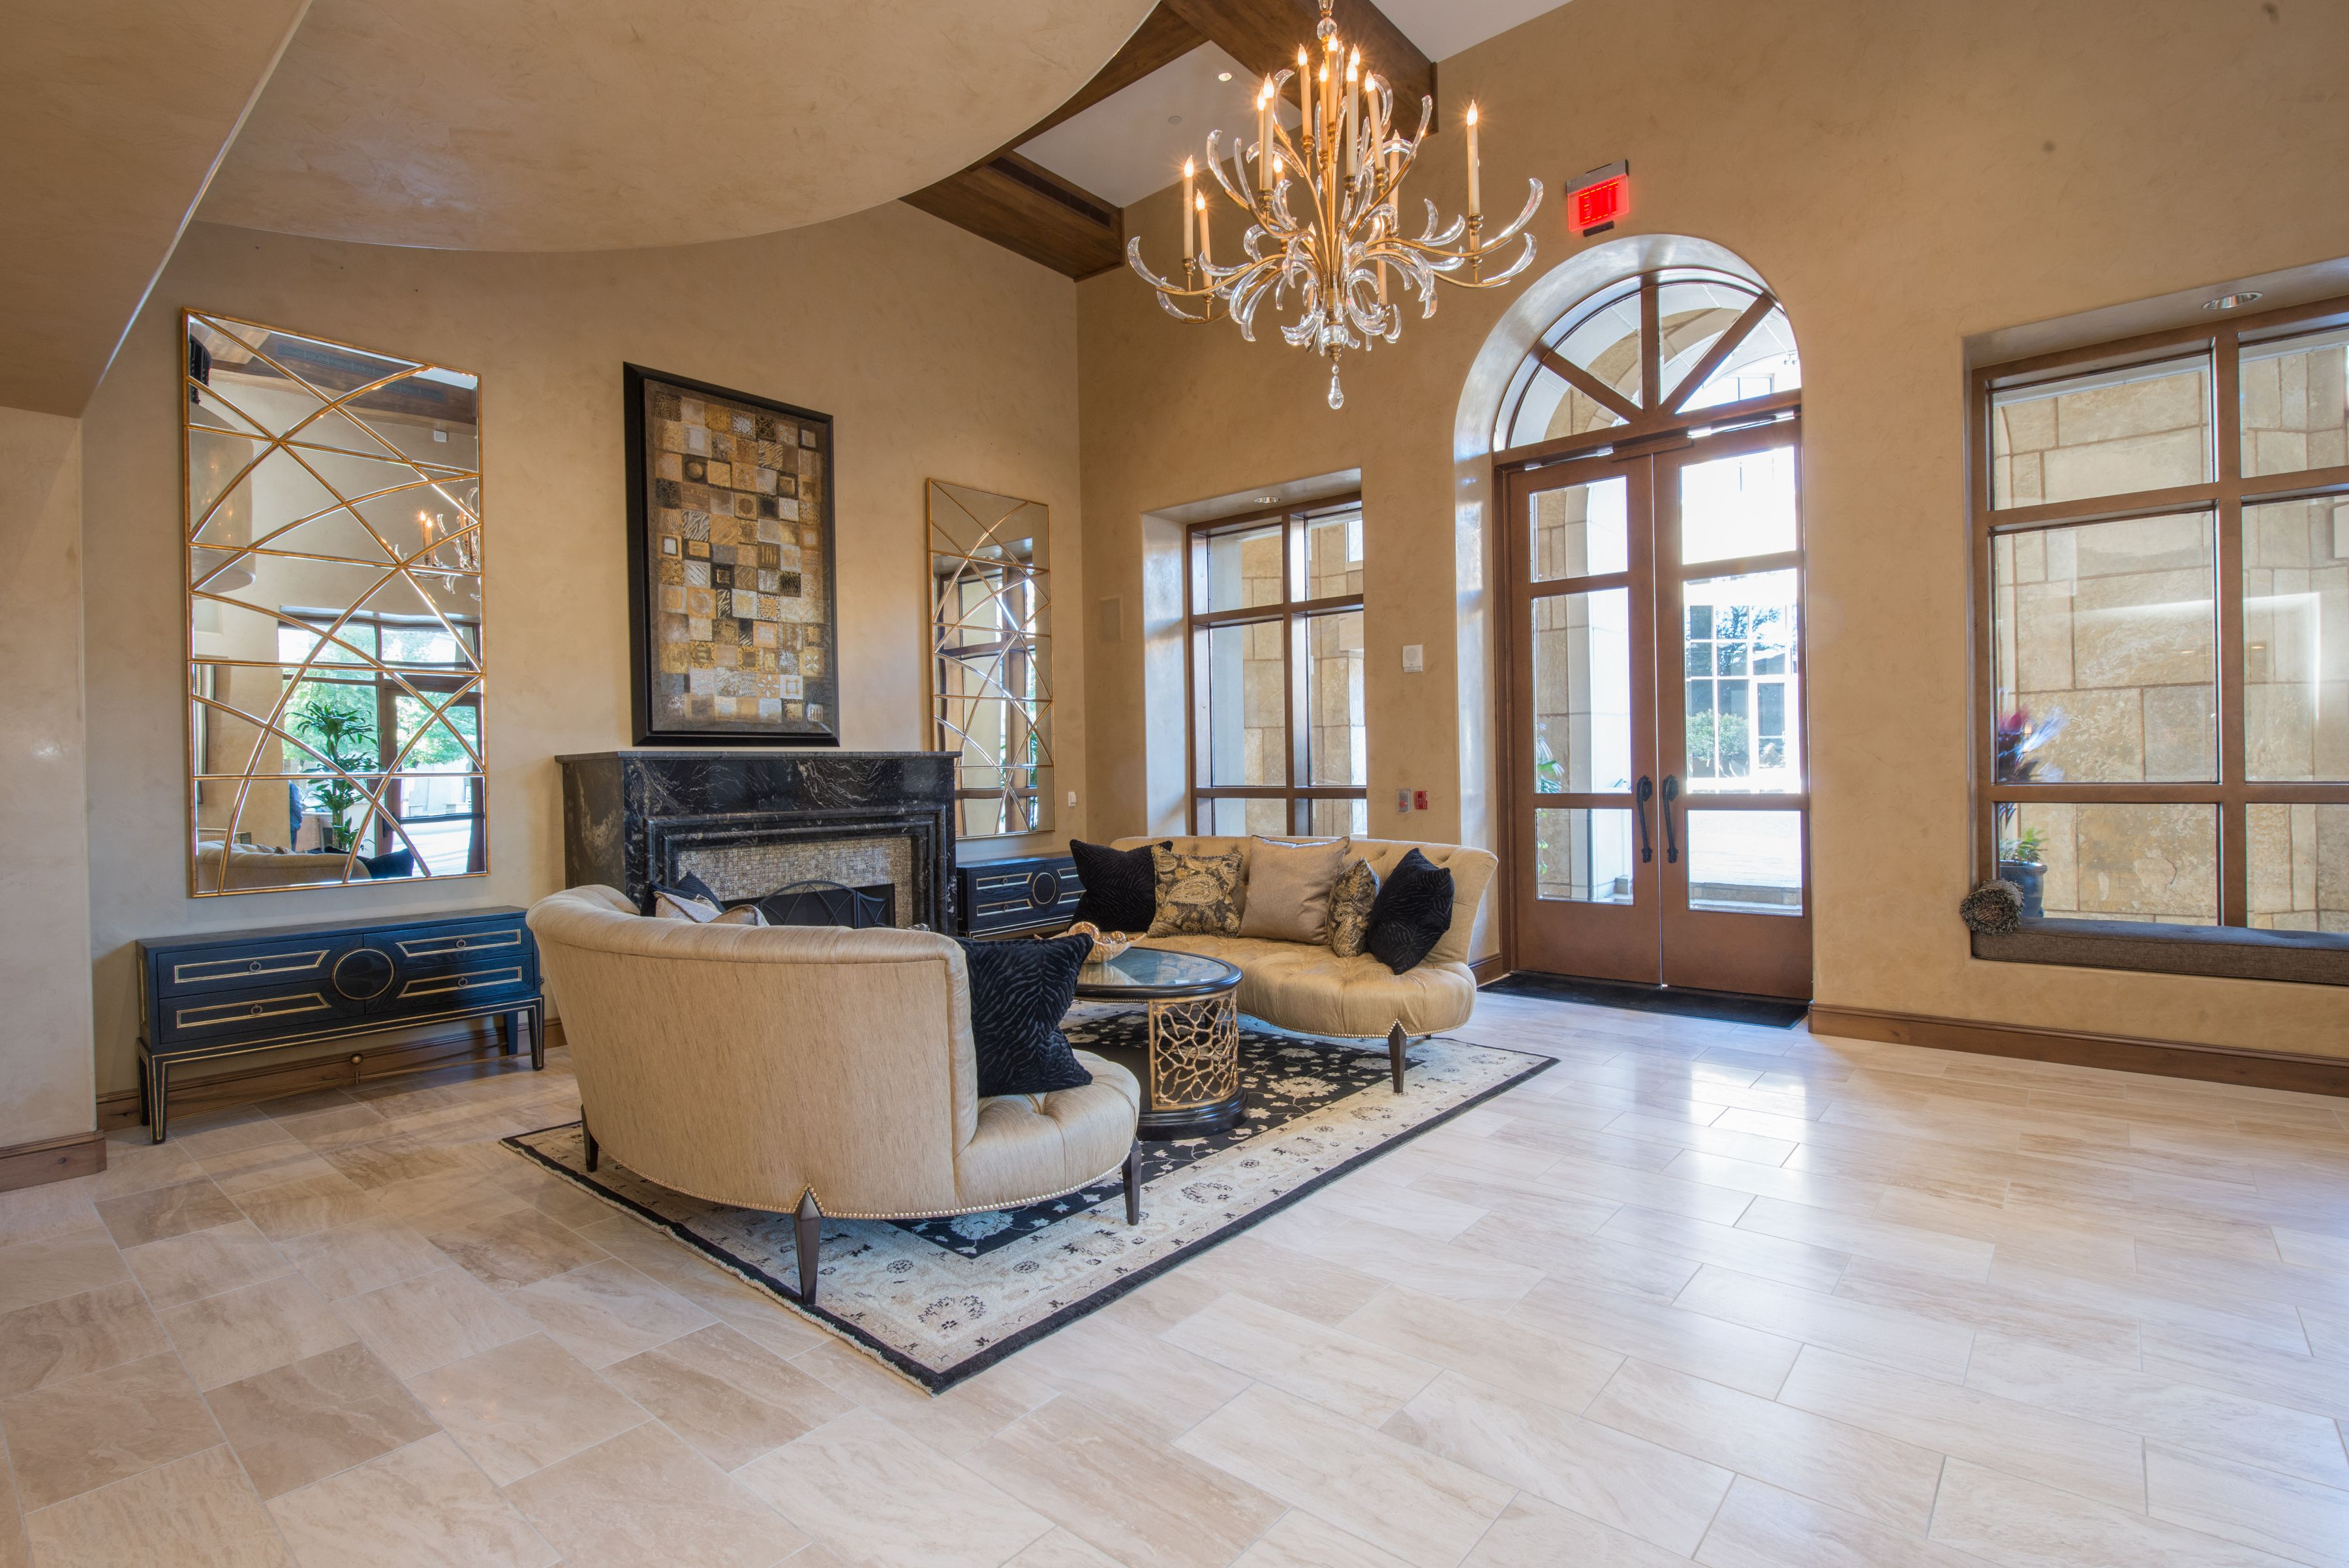 The Lobby Of This High End Condominium Residence In